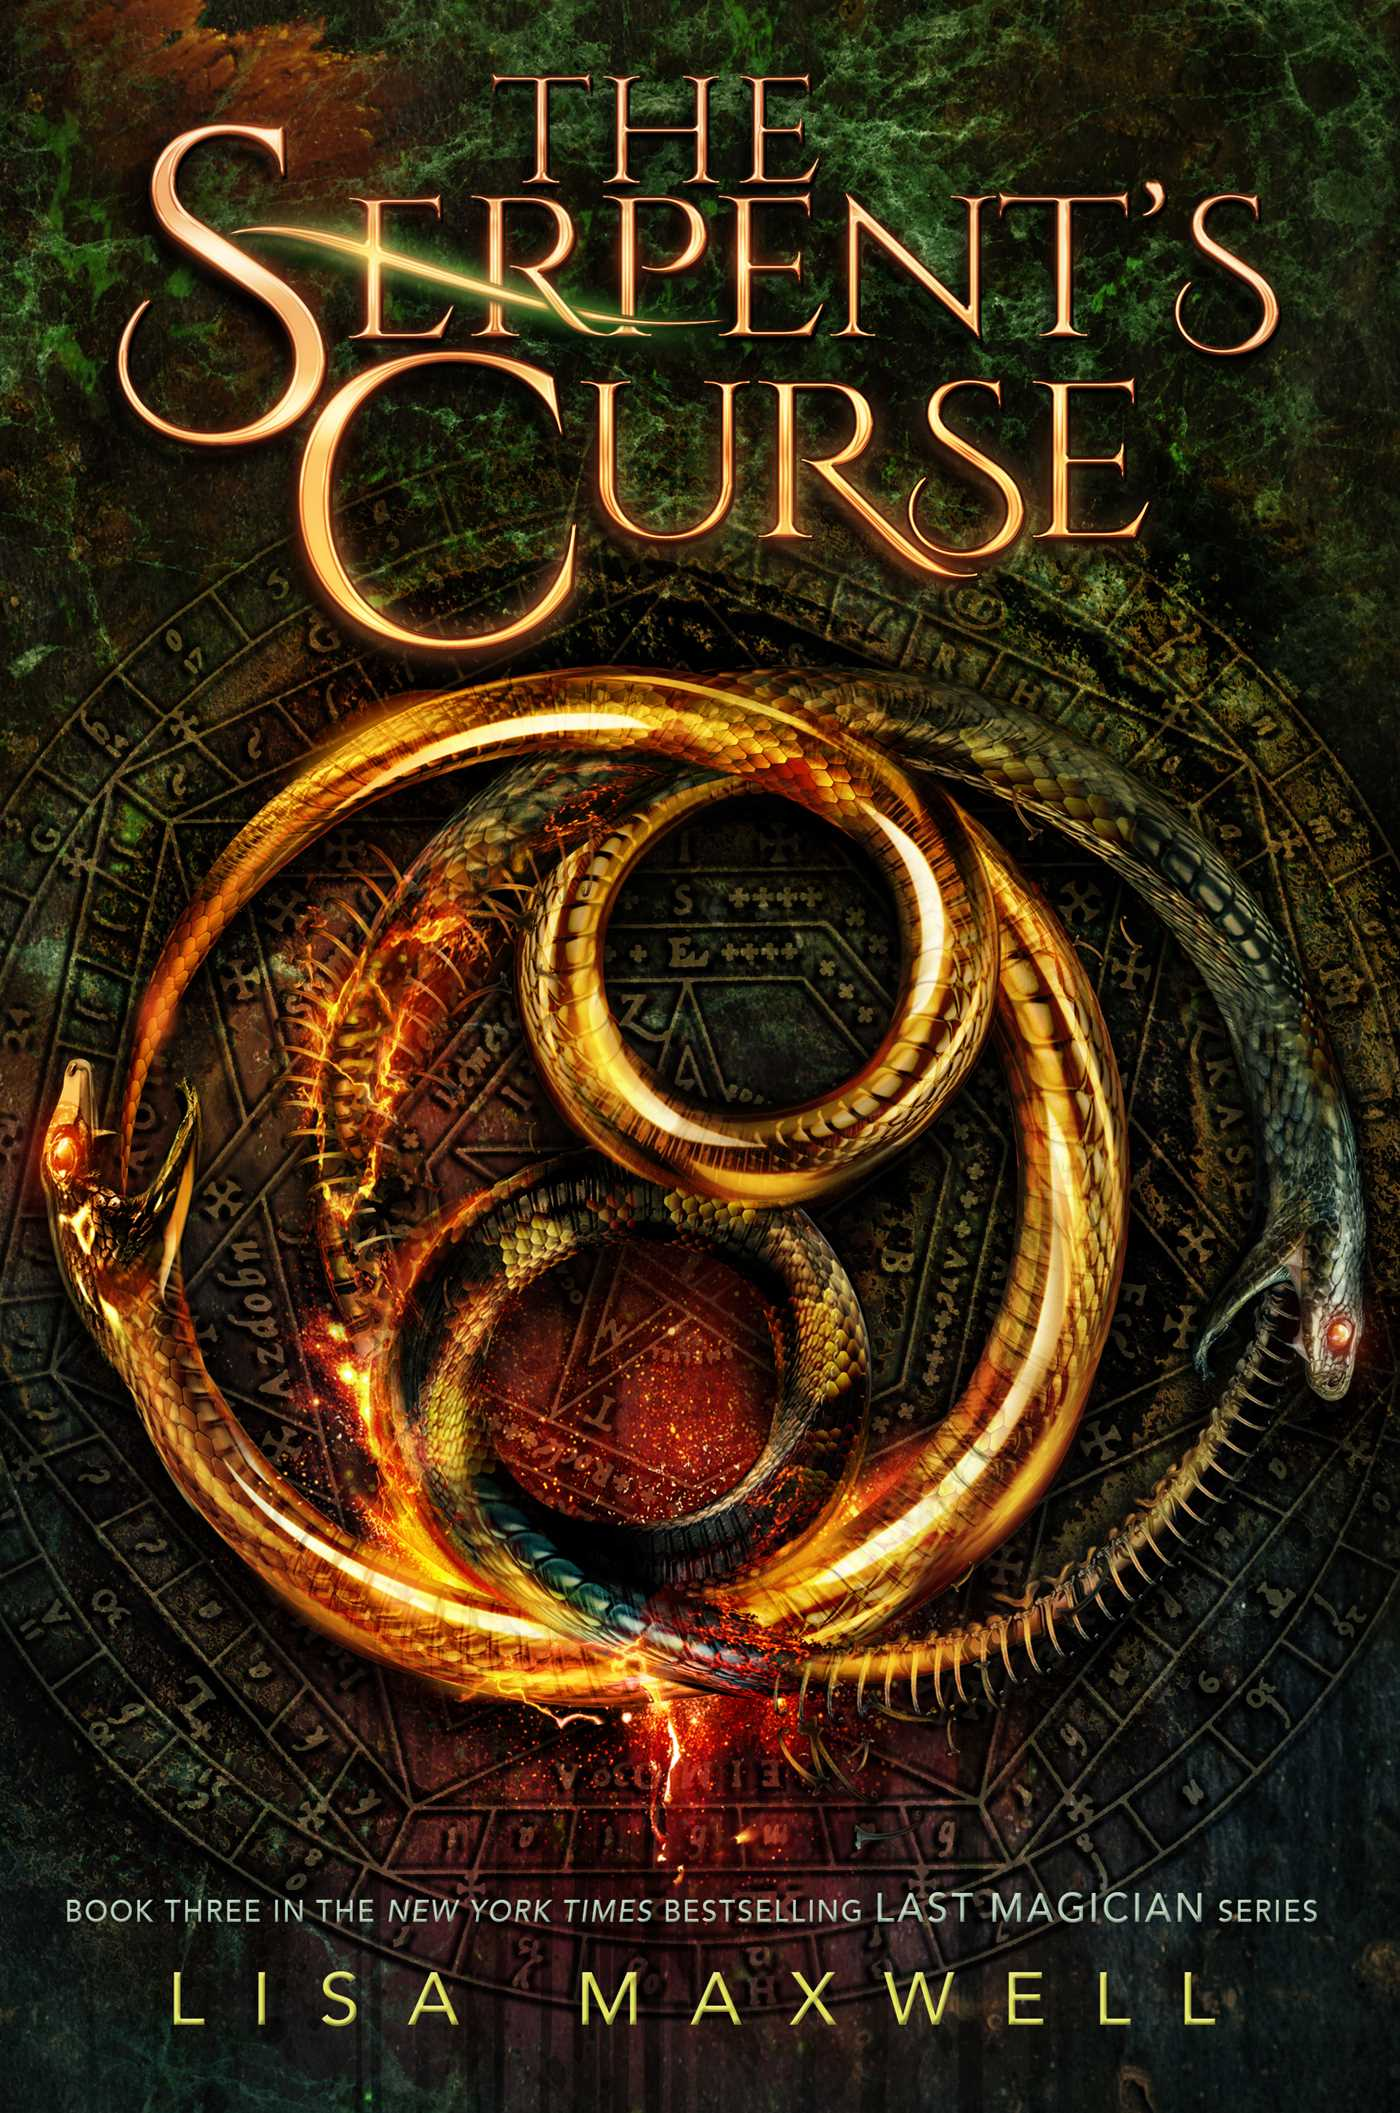 When Does The Serpent's Curse Come Out? 2020 YA Fantasy & Historical Fiction Releases